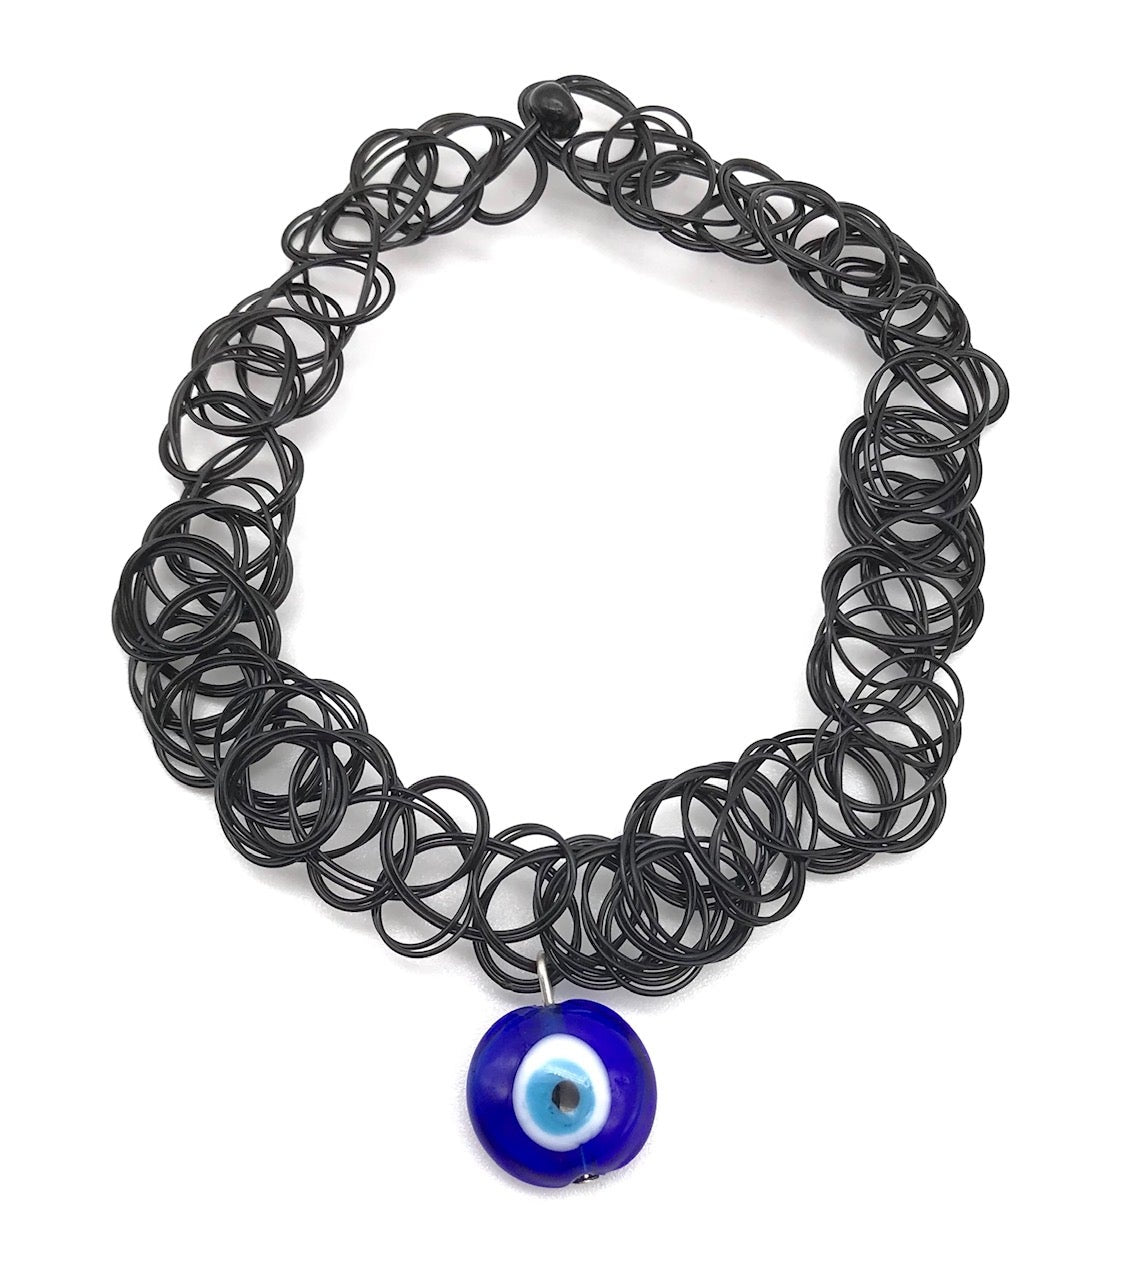 90s VINTAGE BLUE EVIL EYE STRETCH CHOKER